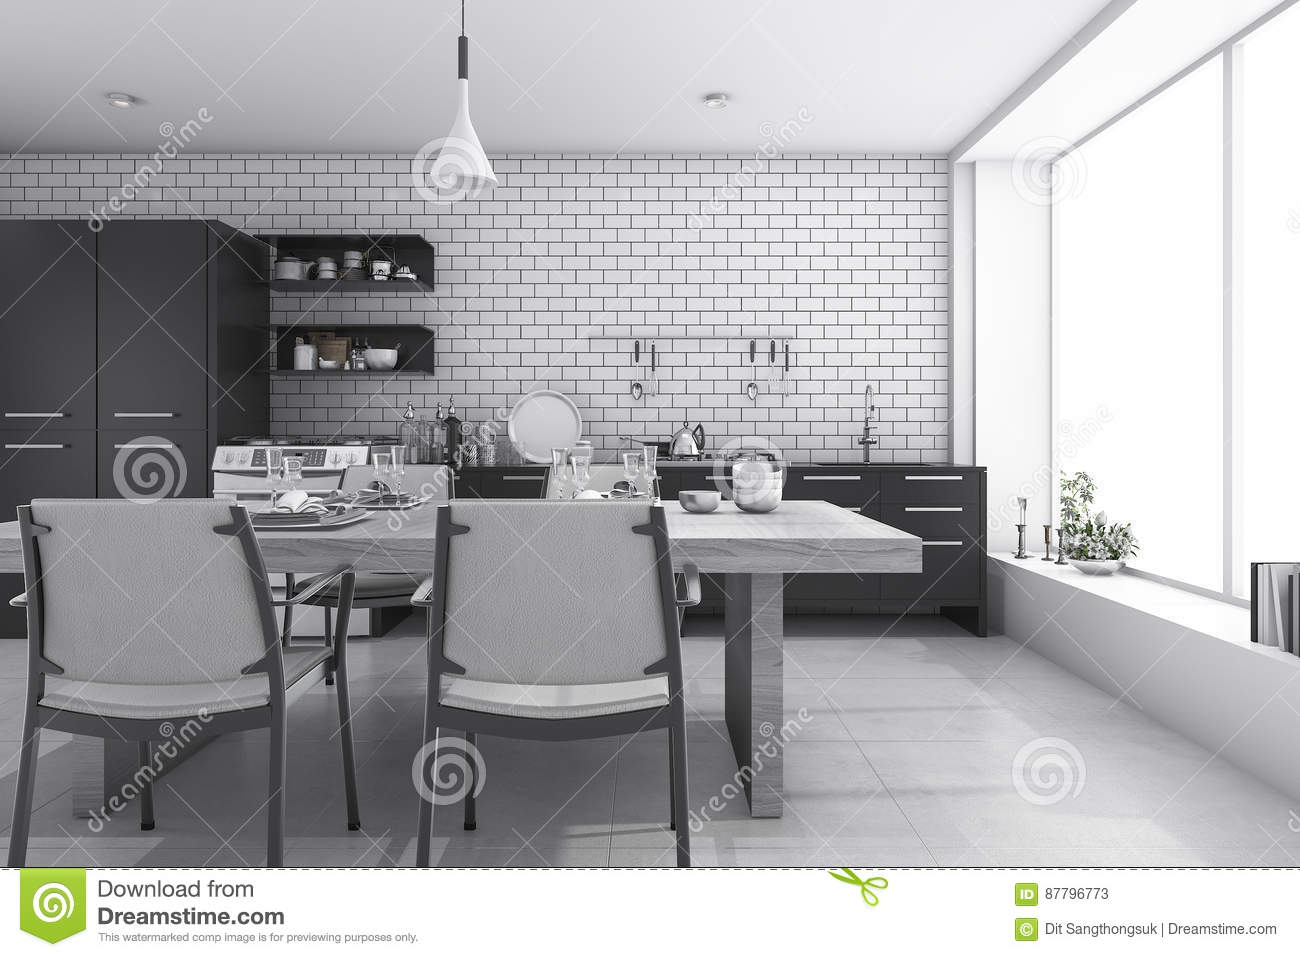 3d Rendering Nice White Brick Kitchen And Dining Room Stock ...